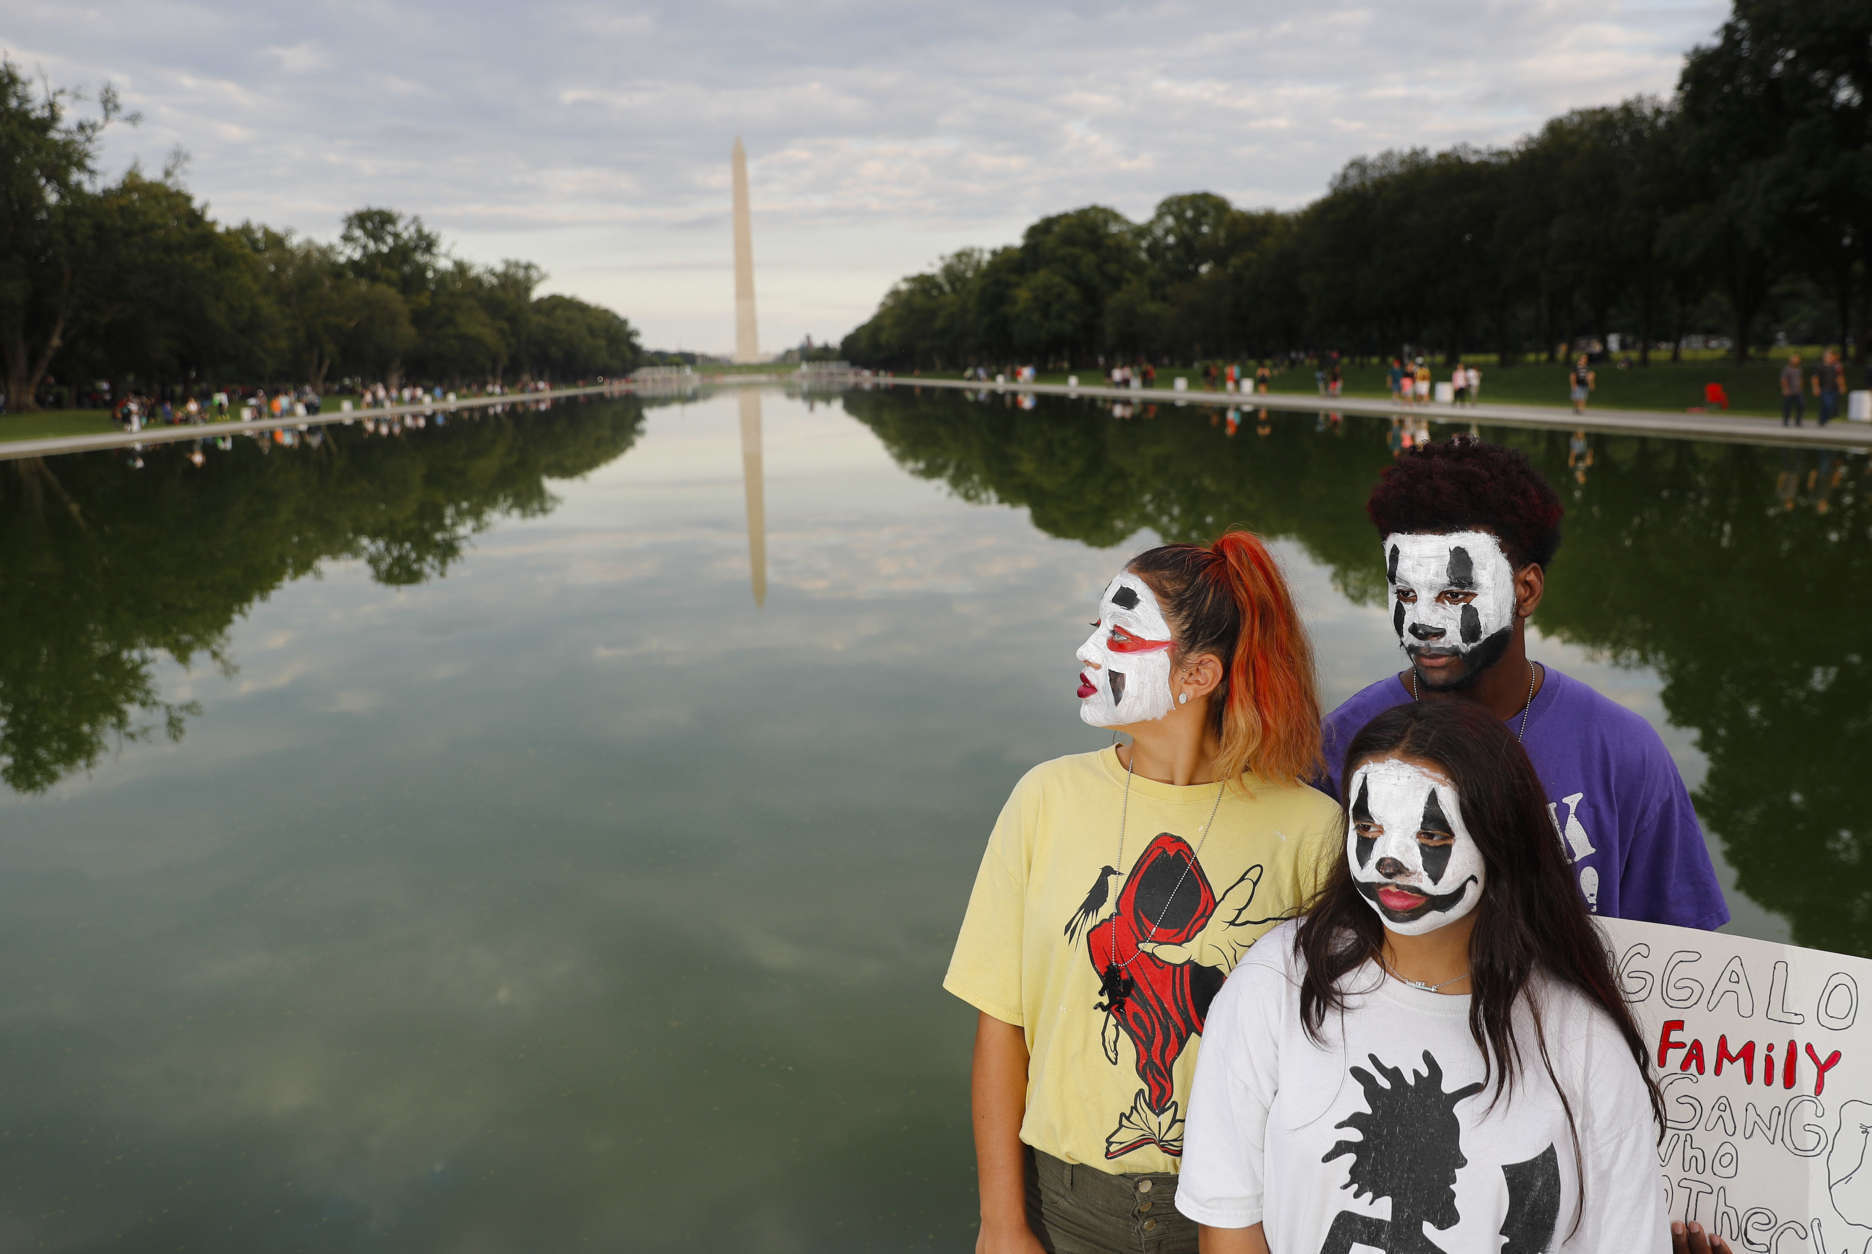 """From left, sisters Melina, 17, and Tiffany Baker, 12, and Jajuan Dunkins, 17, join other juggalos, as supporters of the rap group Insane Clown Posse are known, in front of the Reflecting Pool along the National Mall in Washington during a rally, Saturday, Sept. 16, 2017. The event was to demand that the FBI rescind its classification of the juggalos as """"loosely organized hybrid gang."""" (AP Photo/Pablo Martinez Monsivais)"""